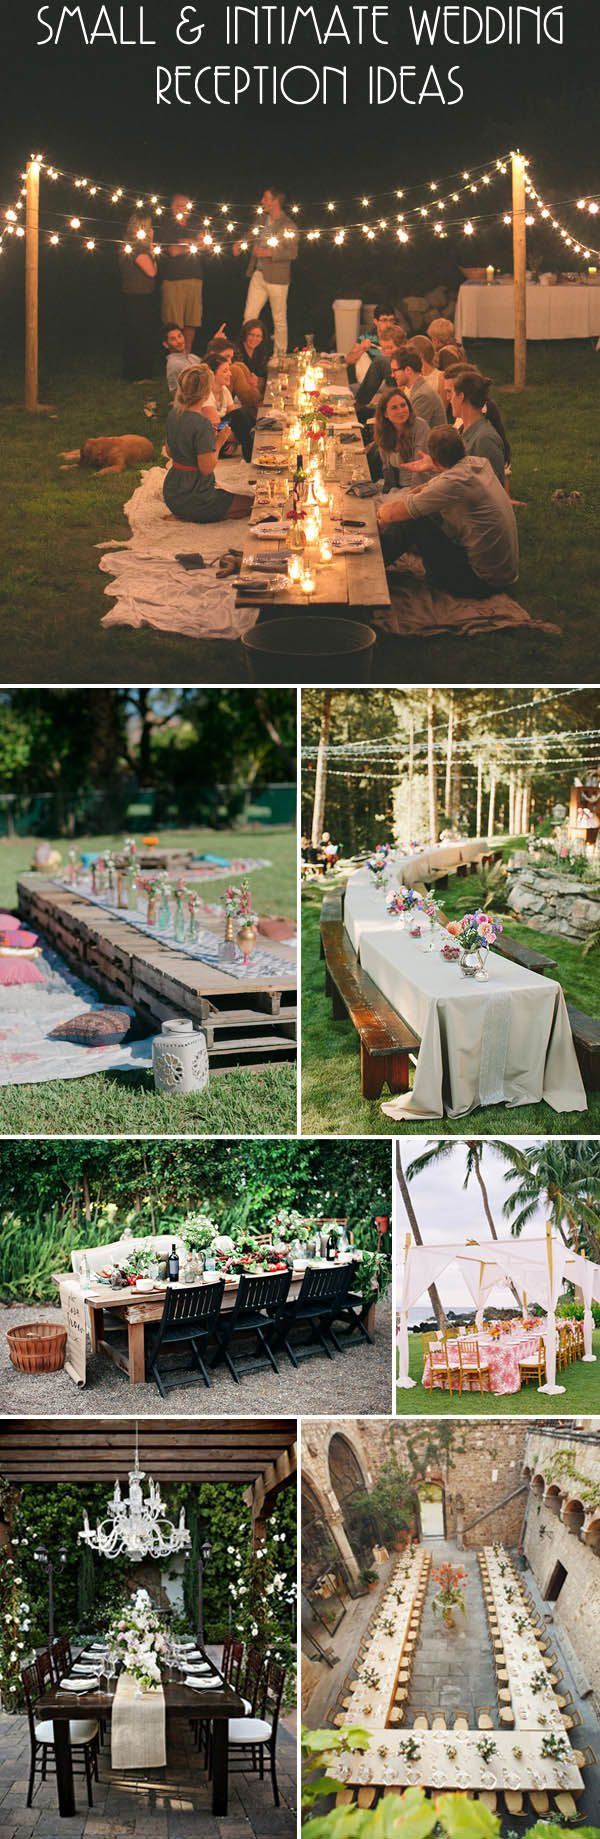 When It Comes To The Reception Opt For Family Style Seating Long Tables With Seats Or Backless B Backyard Wedding Intimate Wedding Reception Intimate Wedding